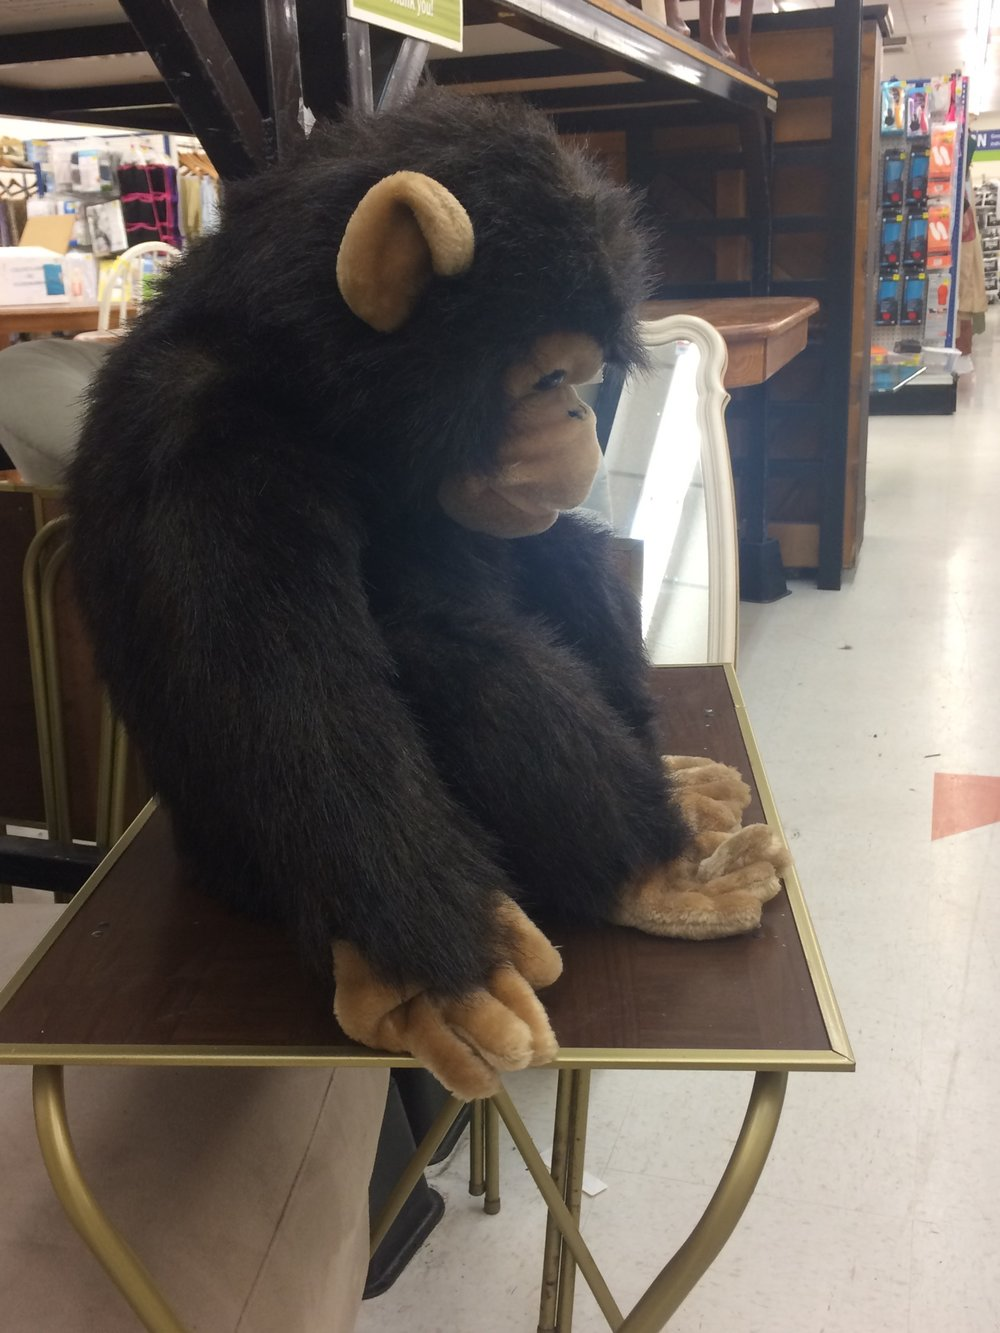 I feel a bit like this chimp at Goodwill.